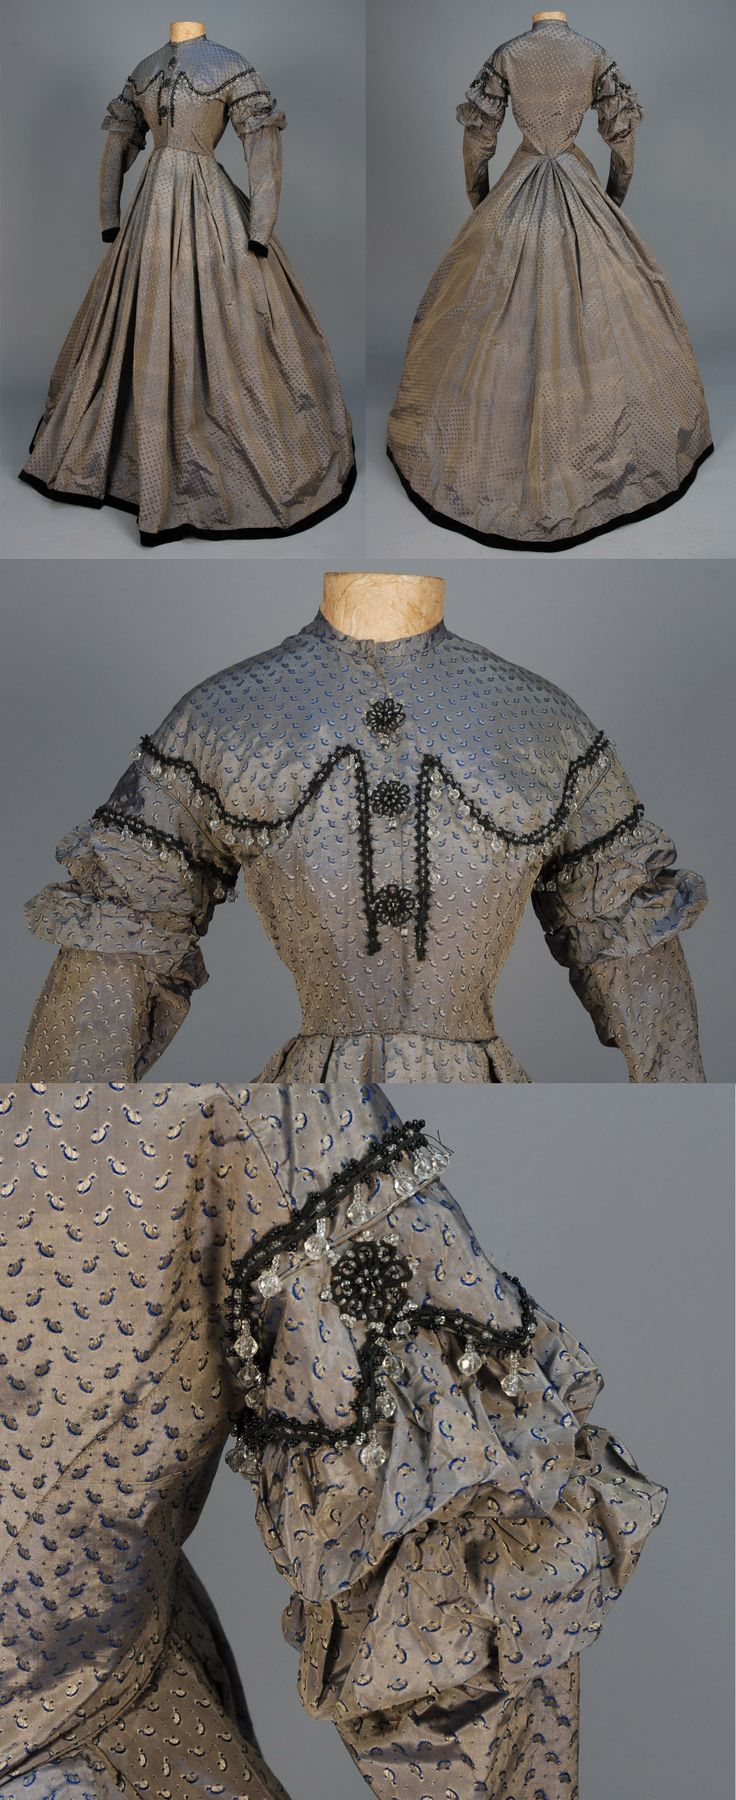 Day dress, 1850s, British, (Lancashire), one-piece blue-grey taffeta (changeable shot-silk) brocaded with a repeat of tiny dots and abstract devices, the bodice decorated with black cord, clear and black beads, long sleeve with narrow cap and two puffed bands, sleeve and full, pleated skirt hemmed in black velvet, hook closures with bound holes in silk, muslin lining. B-33, W-23, L-58. From Whitaker Auctions